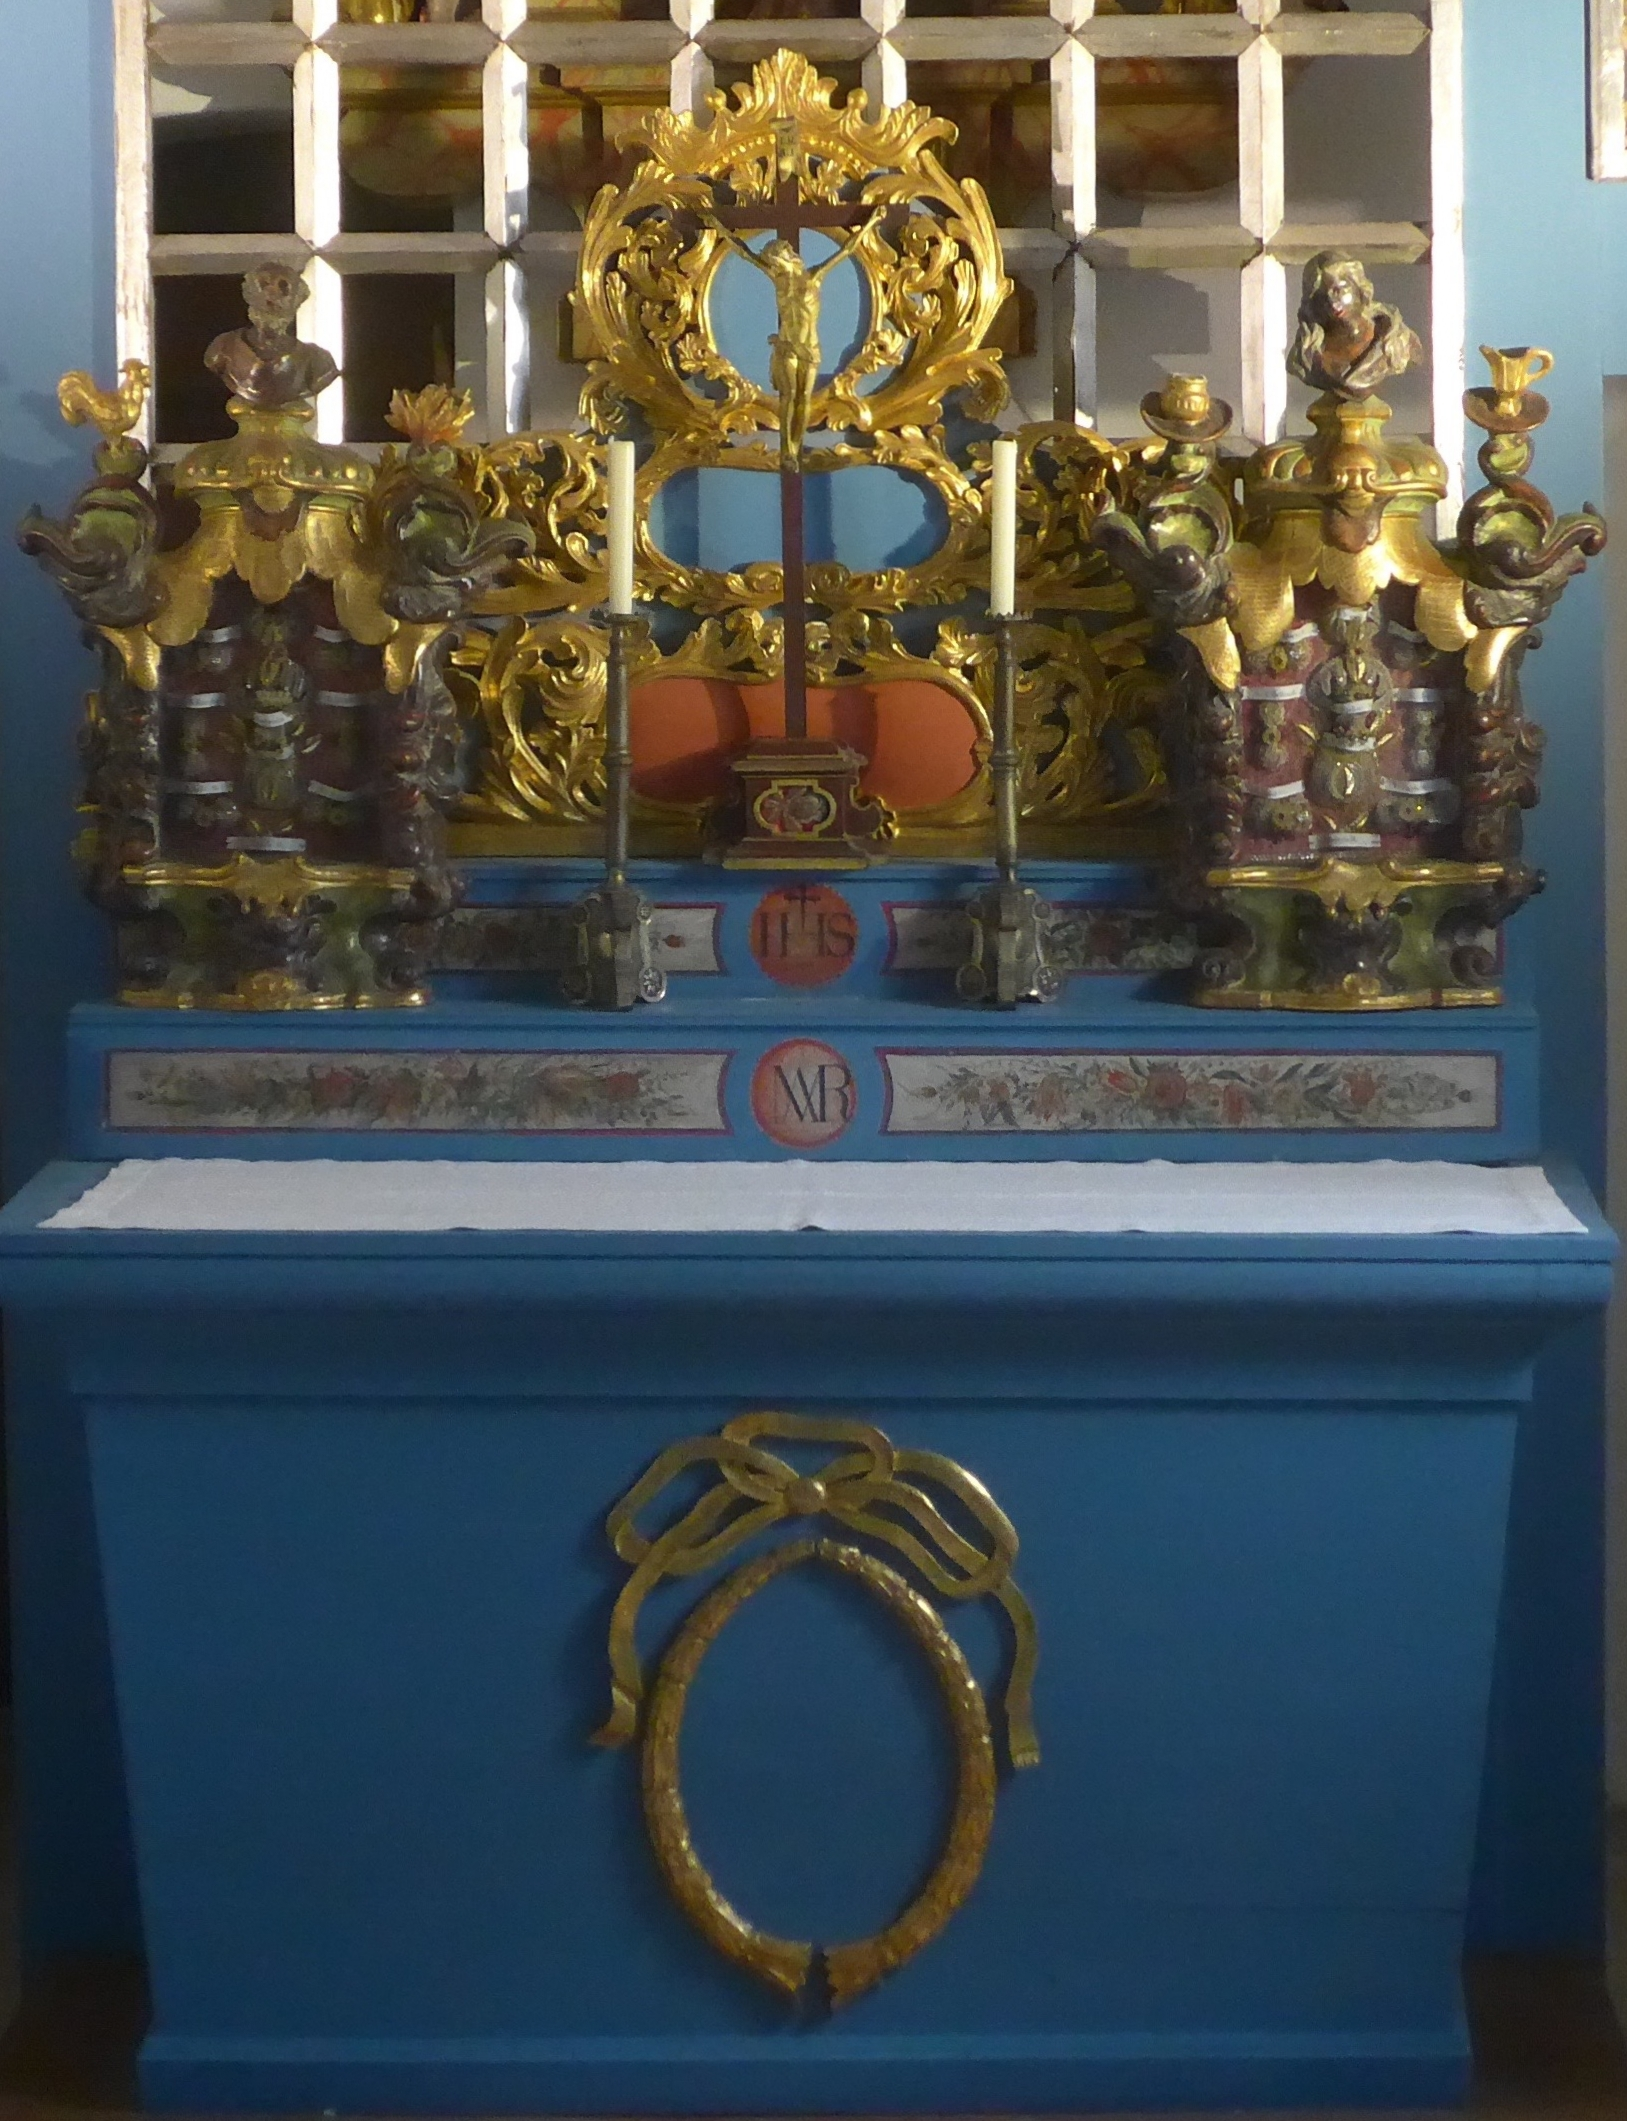 The hearts of Karl and Zita are enshrined behind the altar's grille in the Loreto Chapel at Muri Abbey, Switzerland.